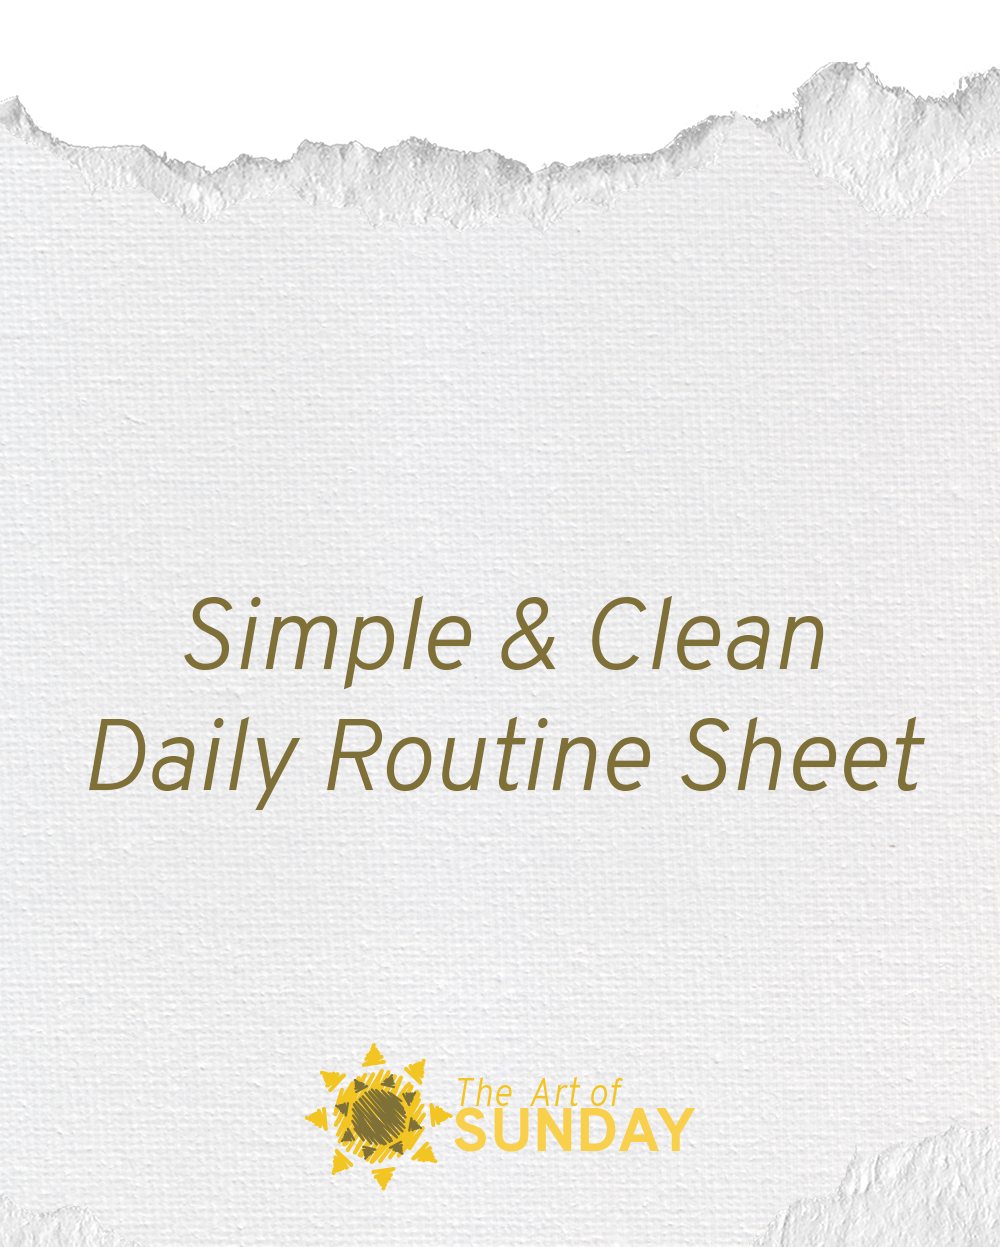 Simple & Clean Daily Routine Sheet